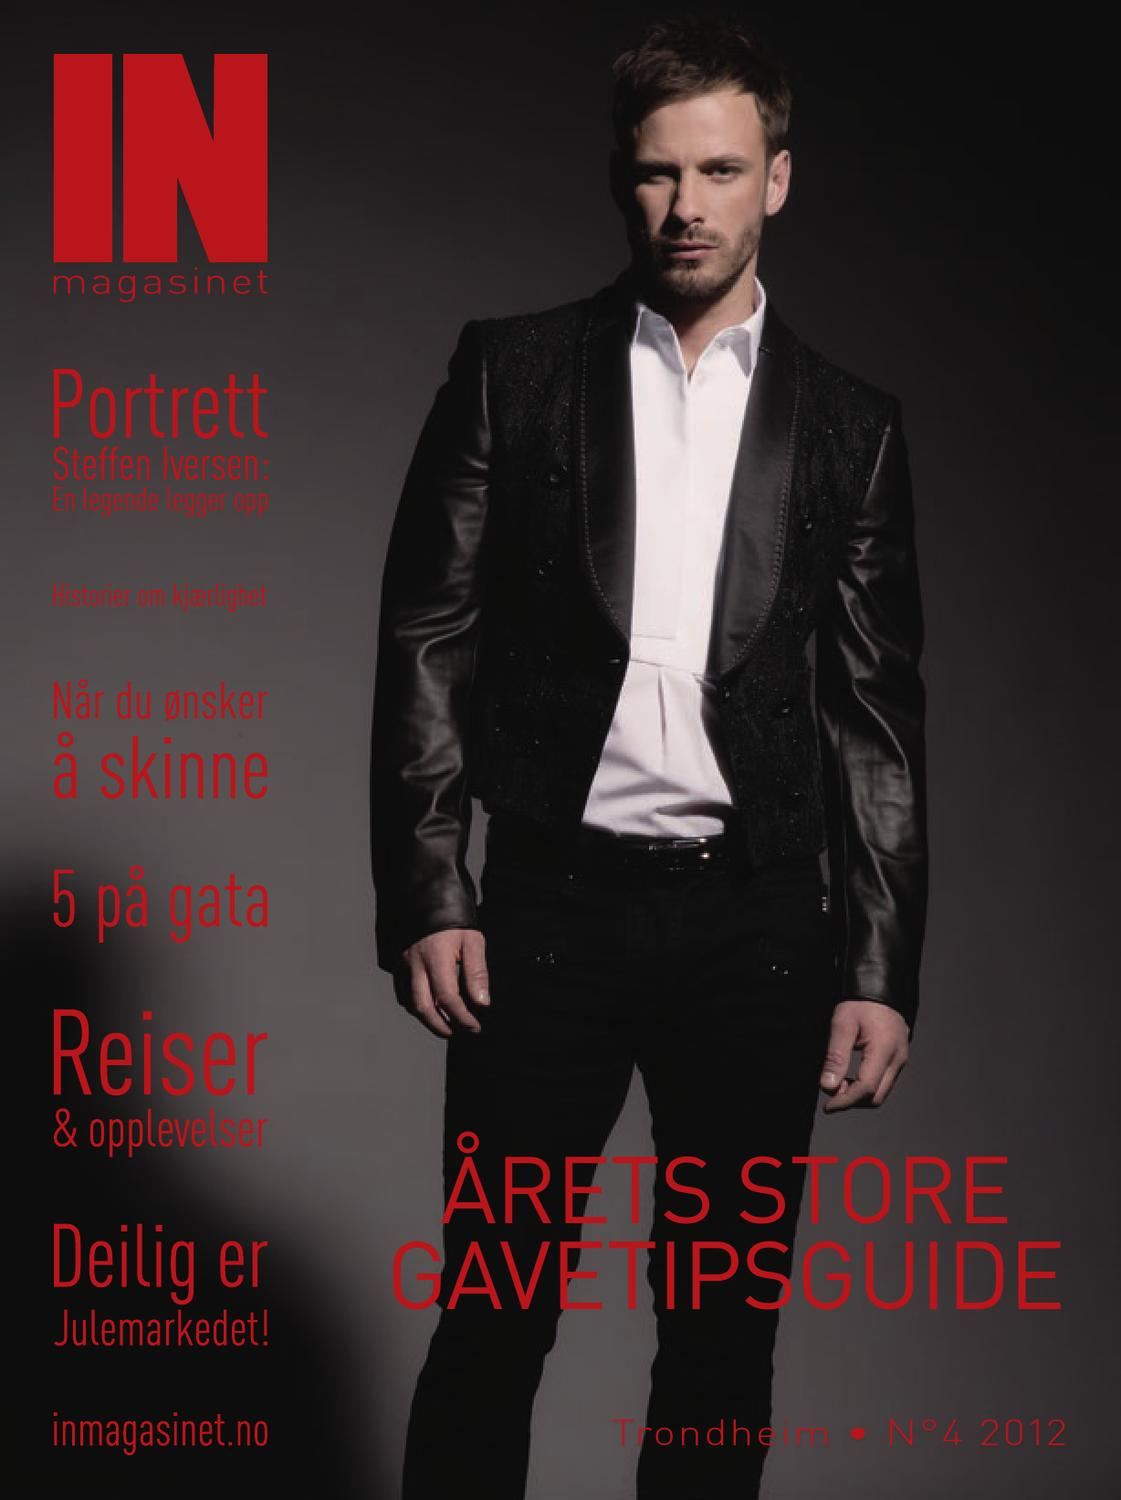 91892543 IN Trondheim 04-2012 by IN magasinet - issuu